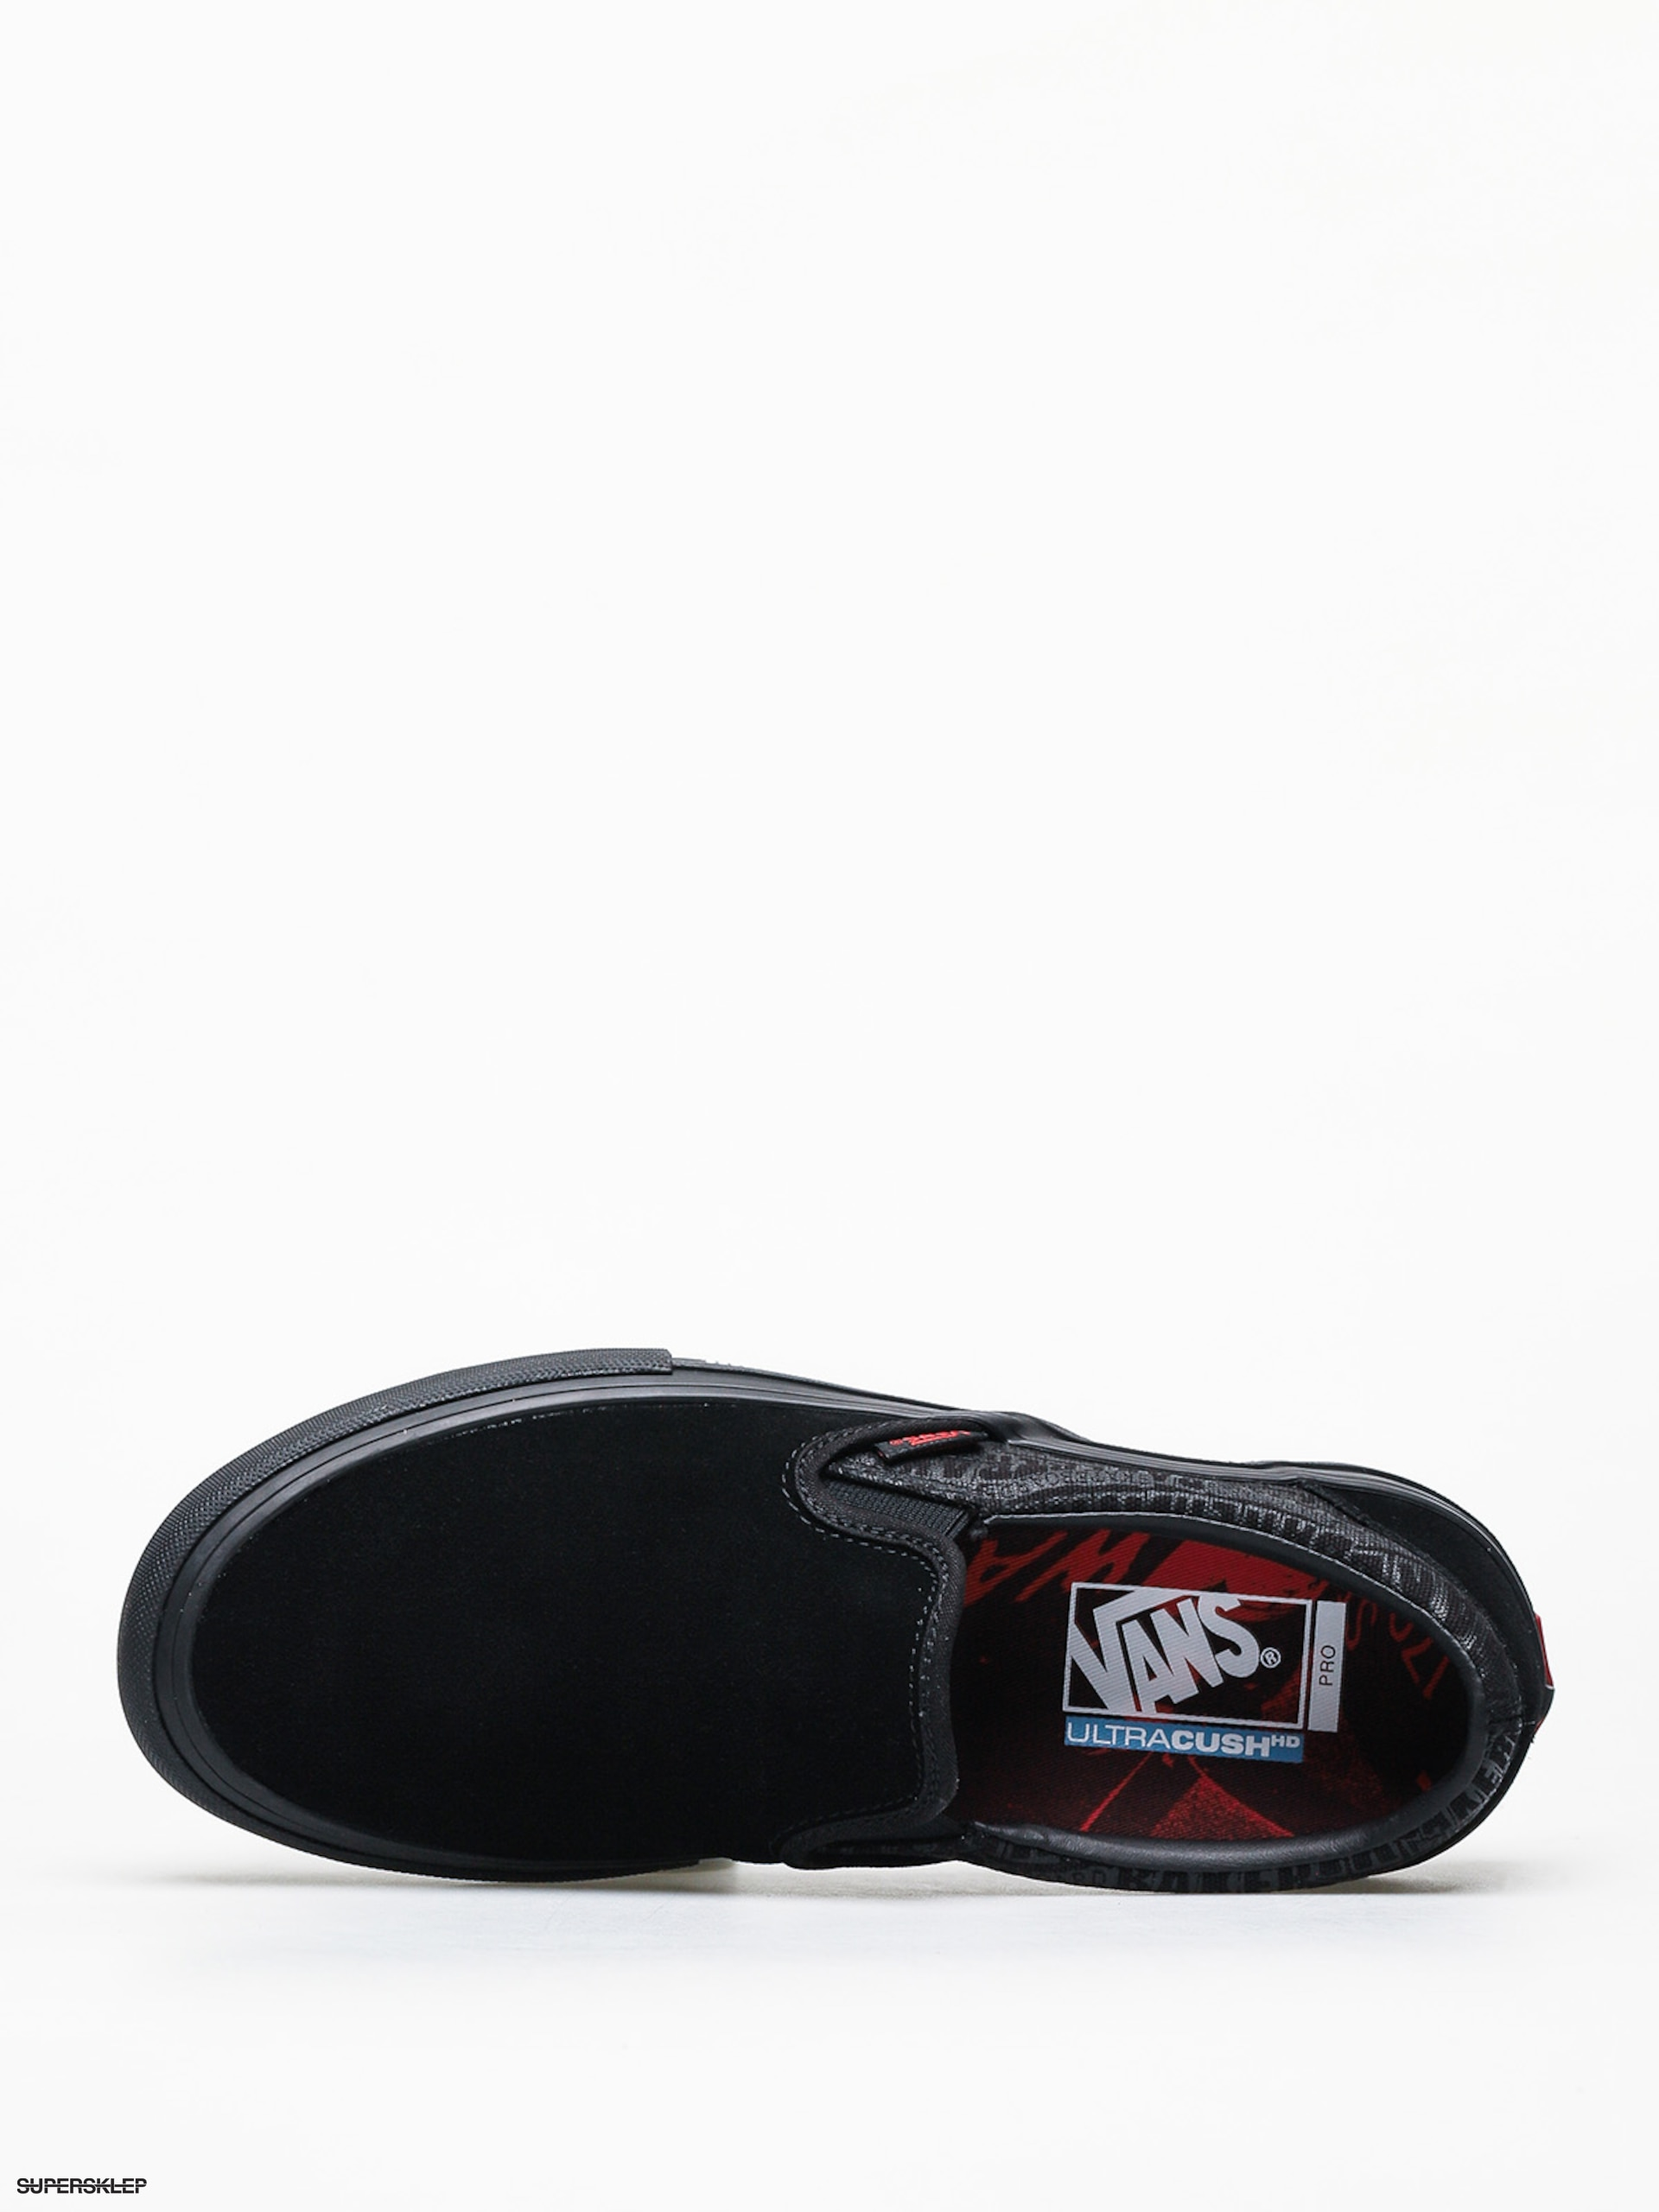 Vans X Baker Slip On Pro Black & Red Skate Shoes